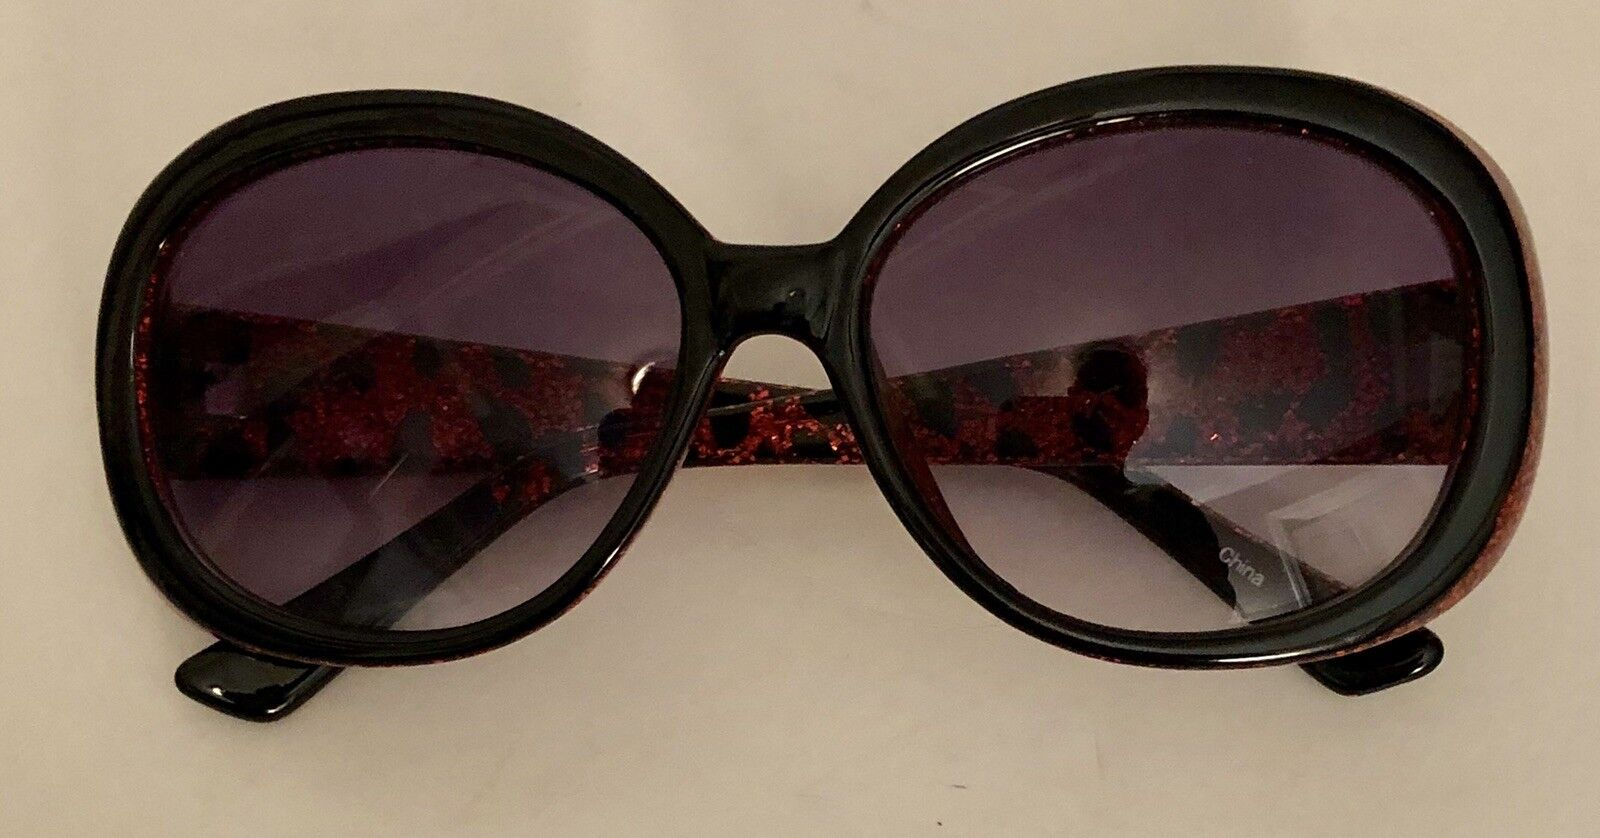 BETSEY JOHNSON SUNGLASSES BLACK WITH PINK GLITTER Gently pre-owned